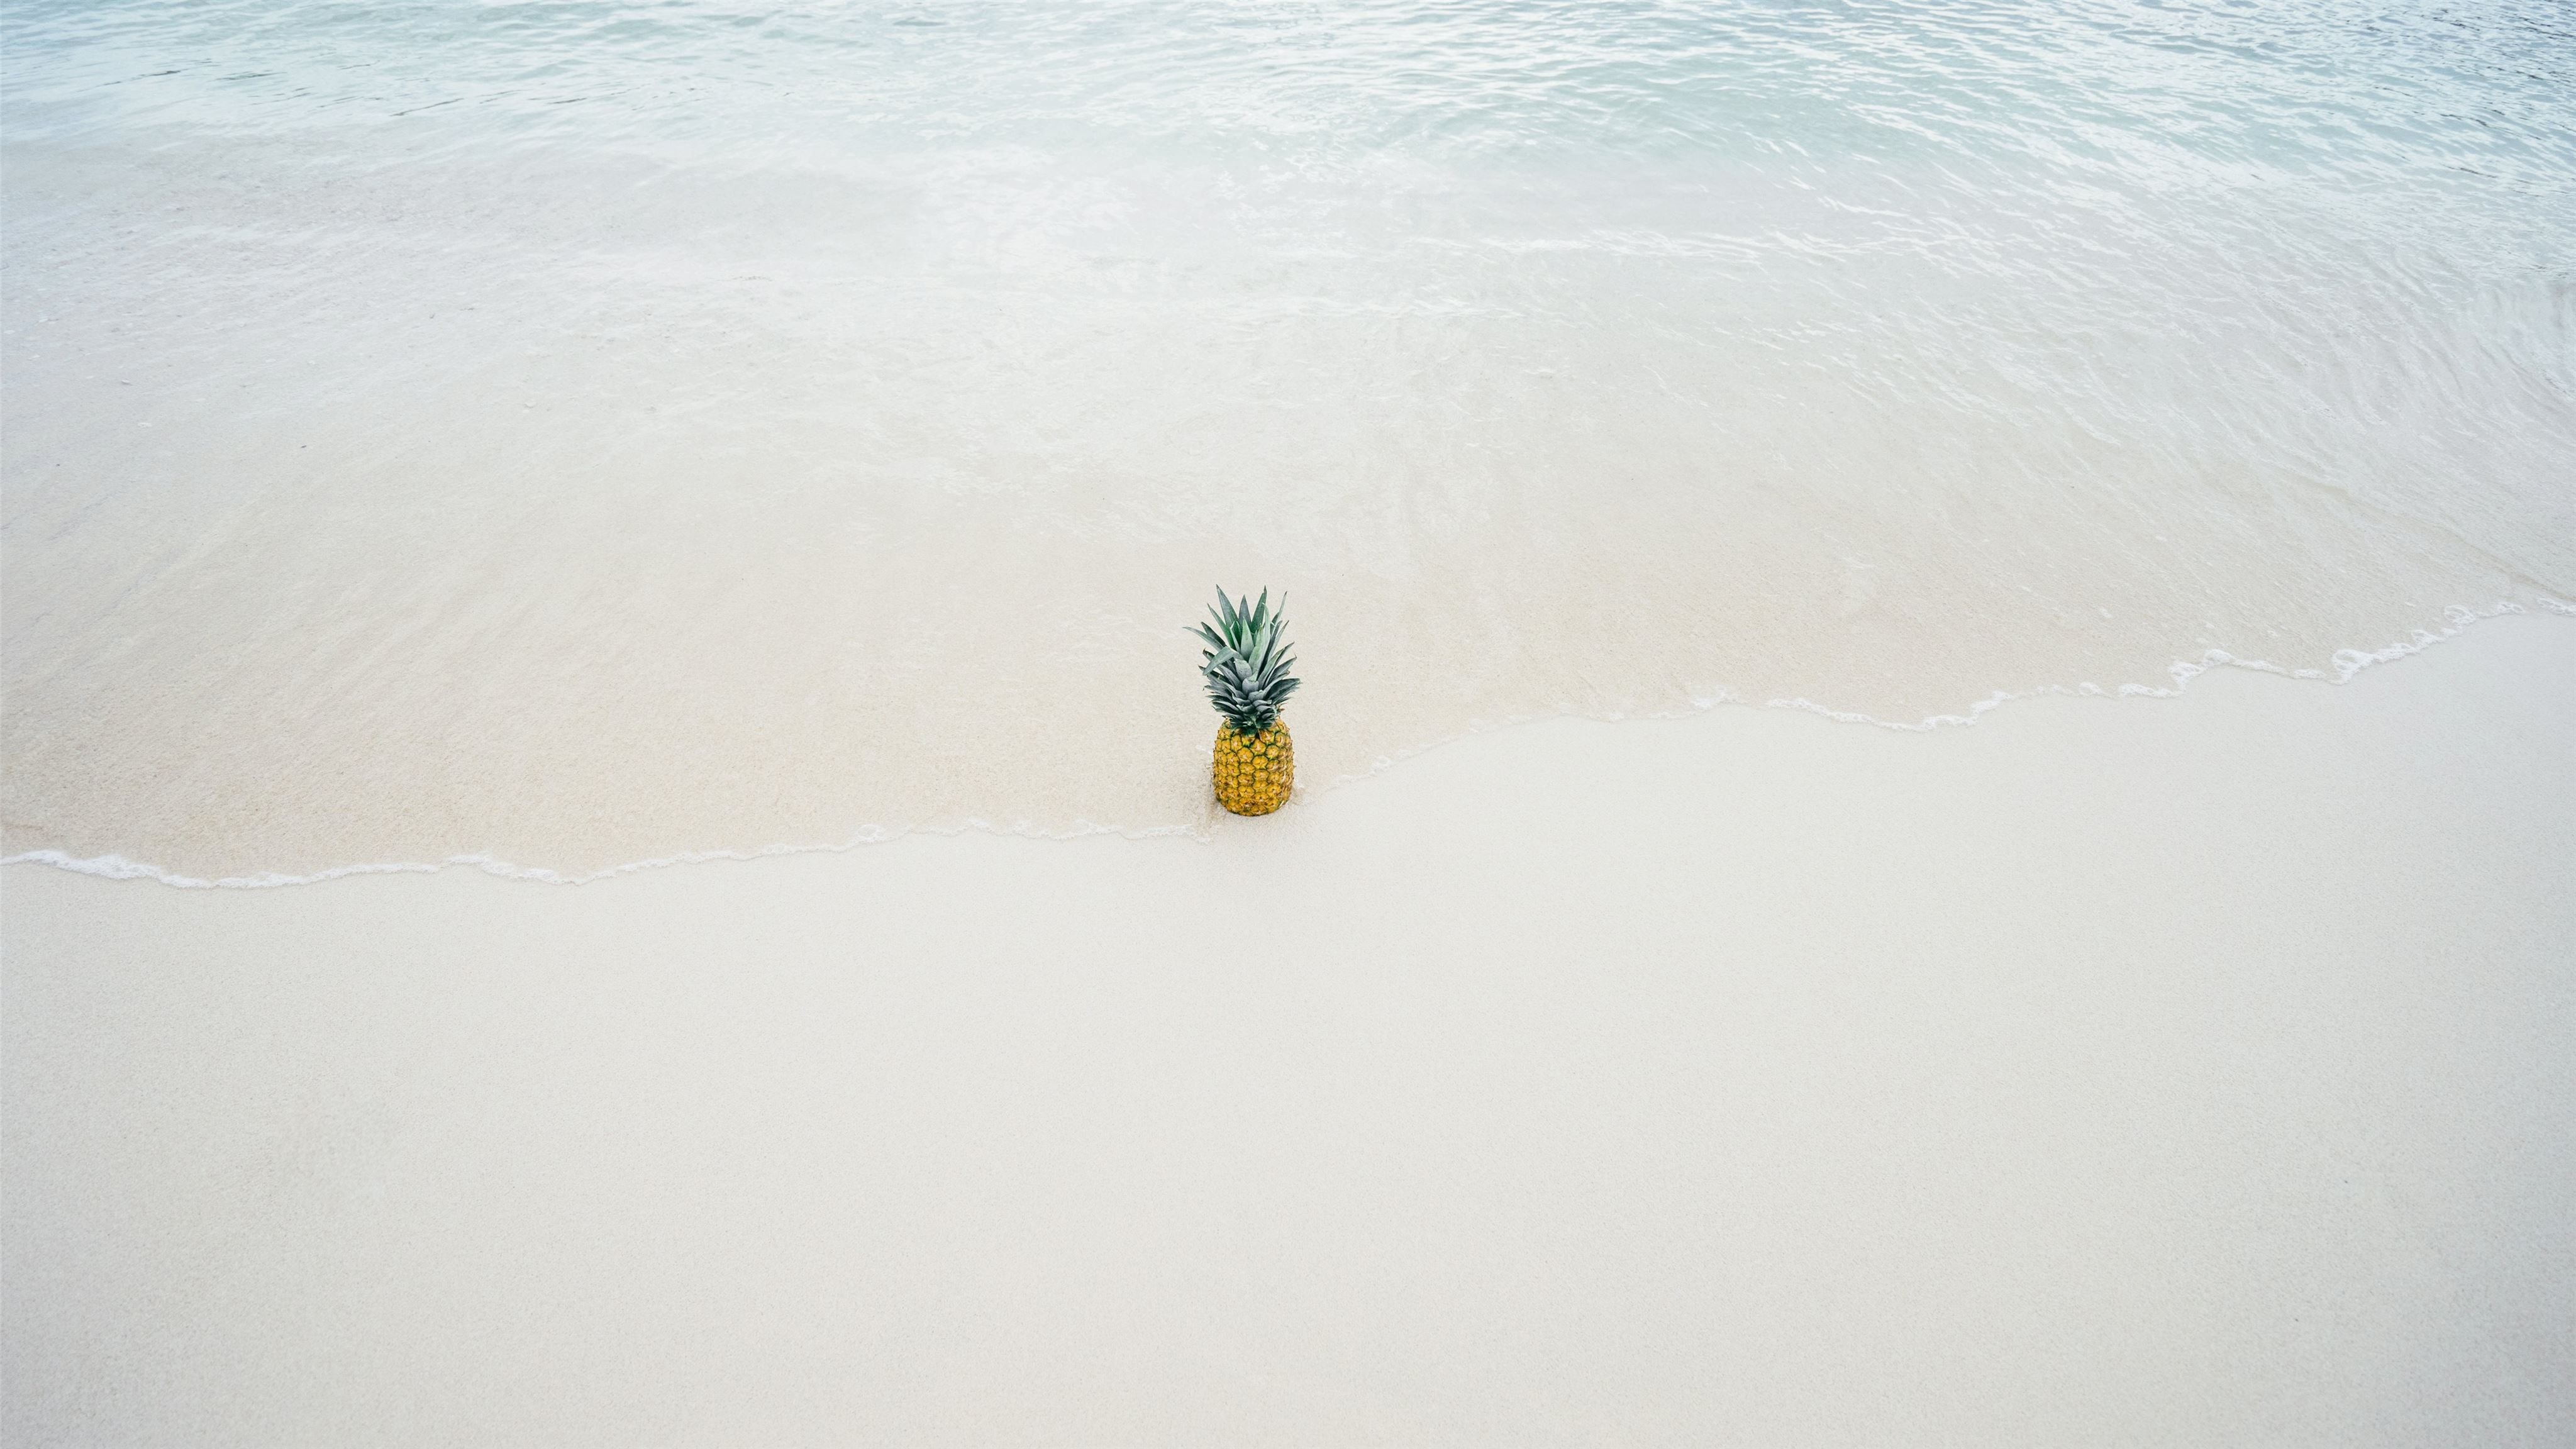 Pineapple in the beach sand Mac Wallpaper Download | Free ...